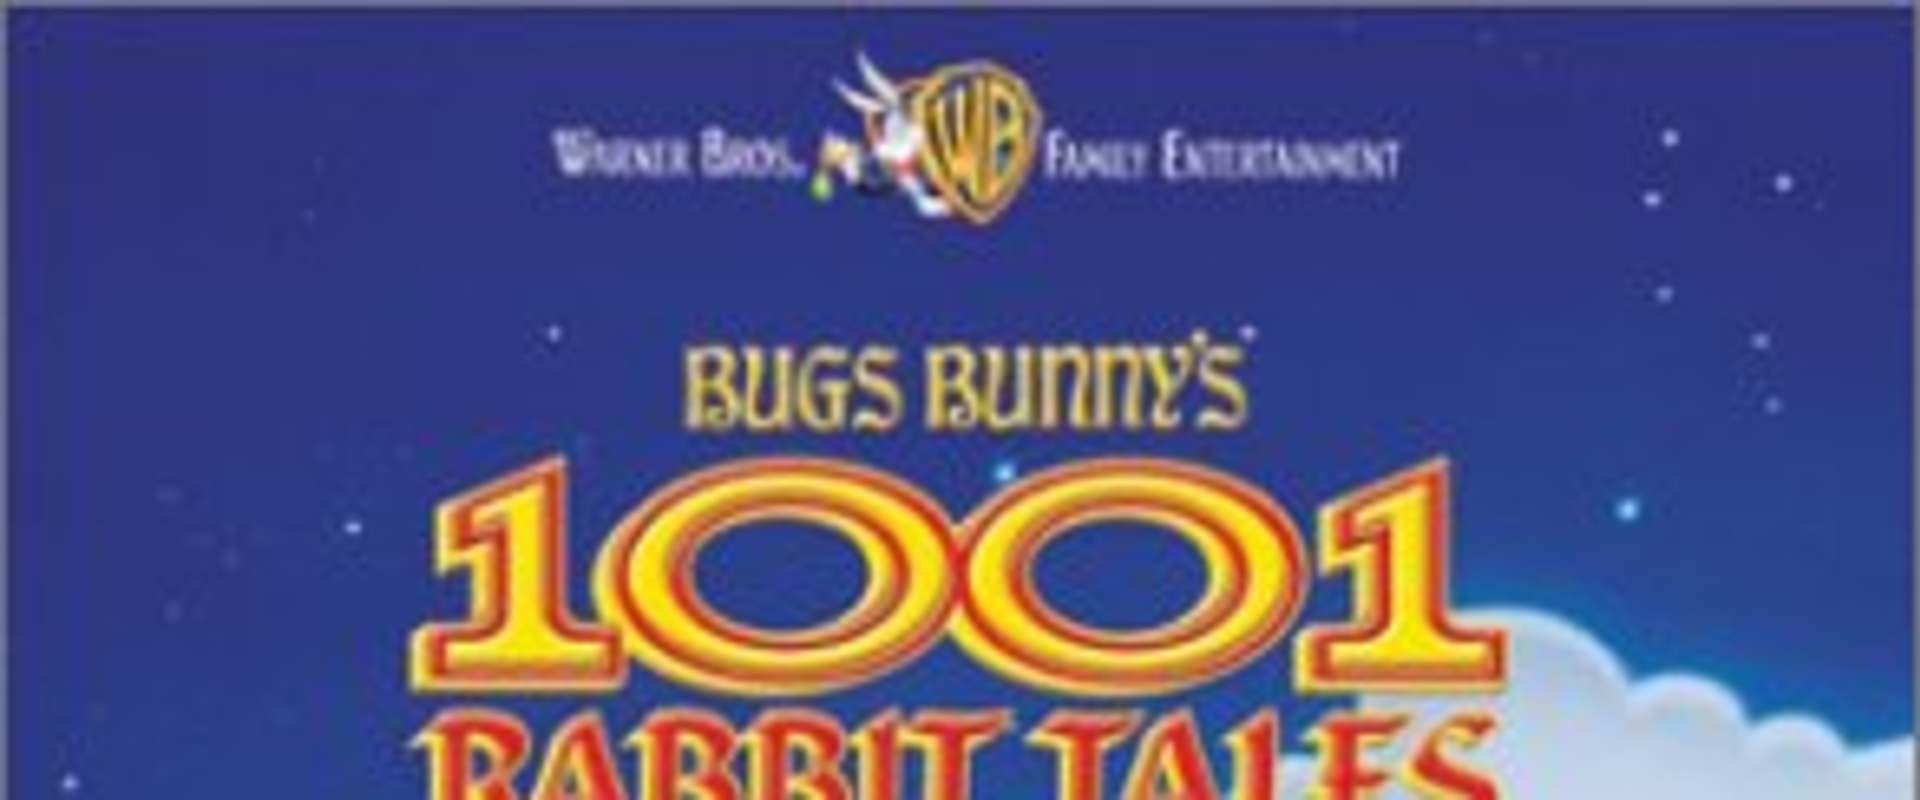 Bugs Bunny's 3rd Movie: 1001 Rabbit Tales background 1